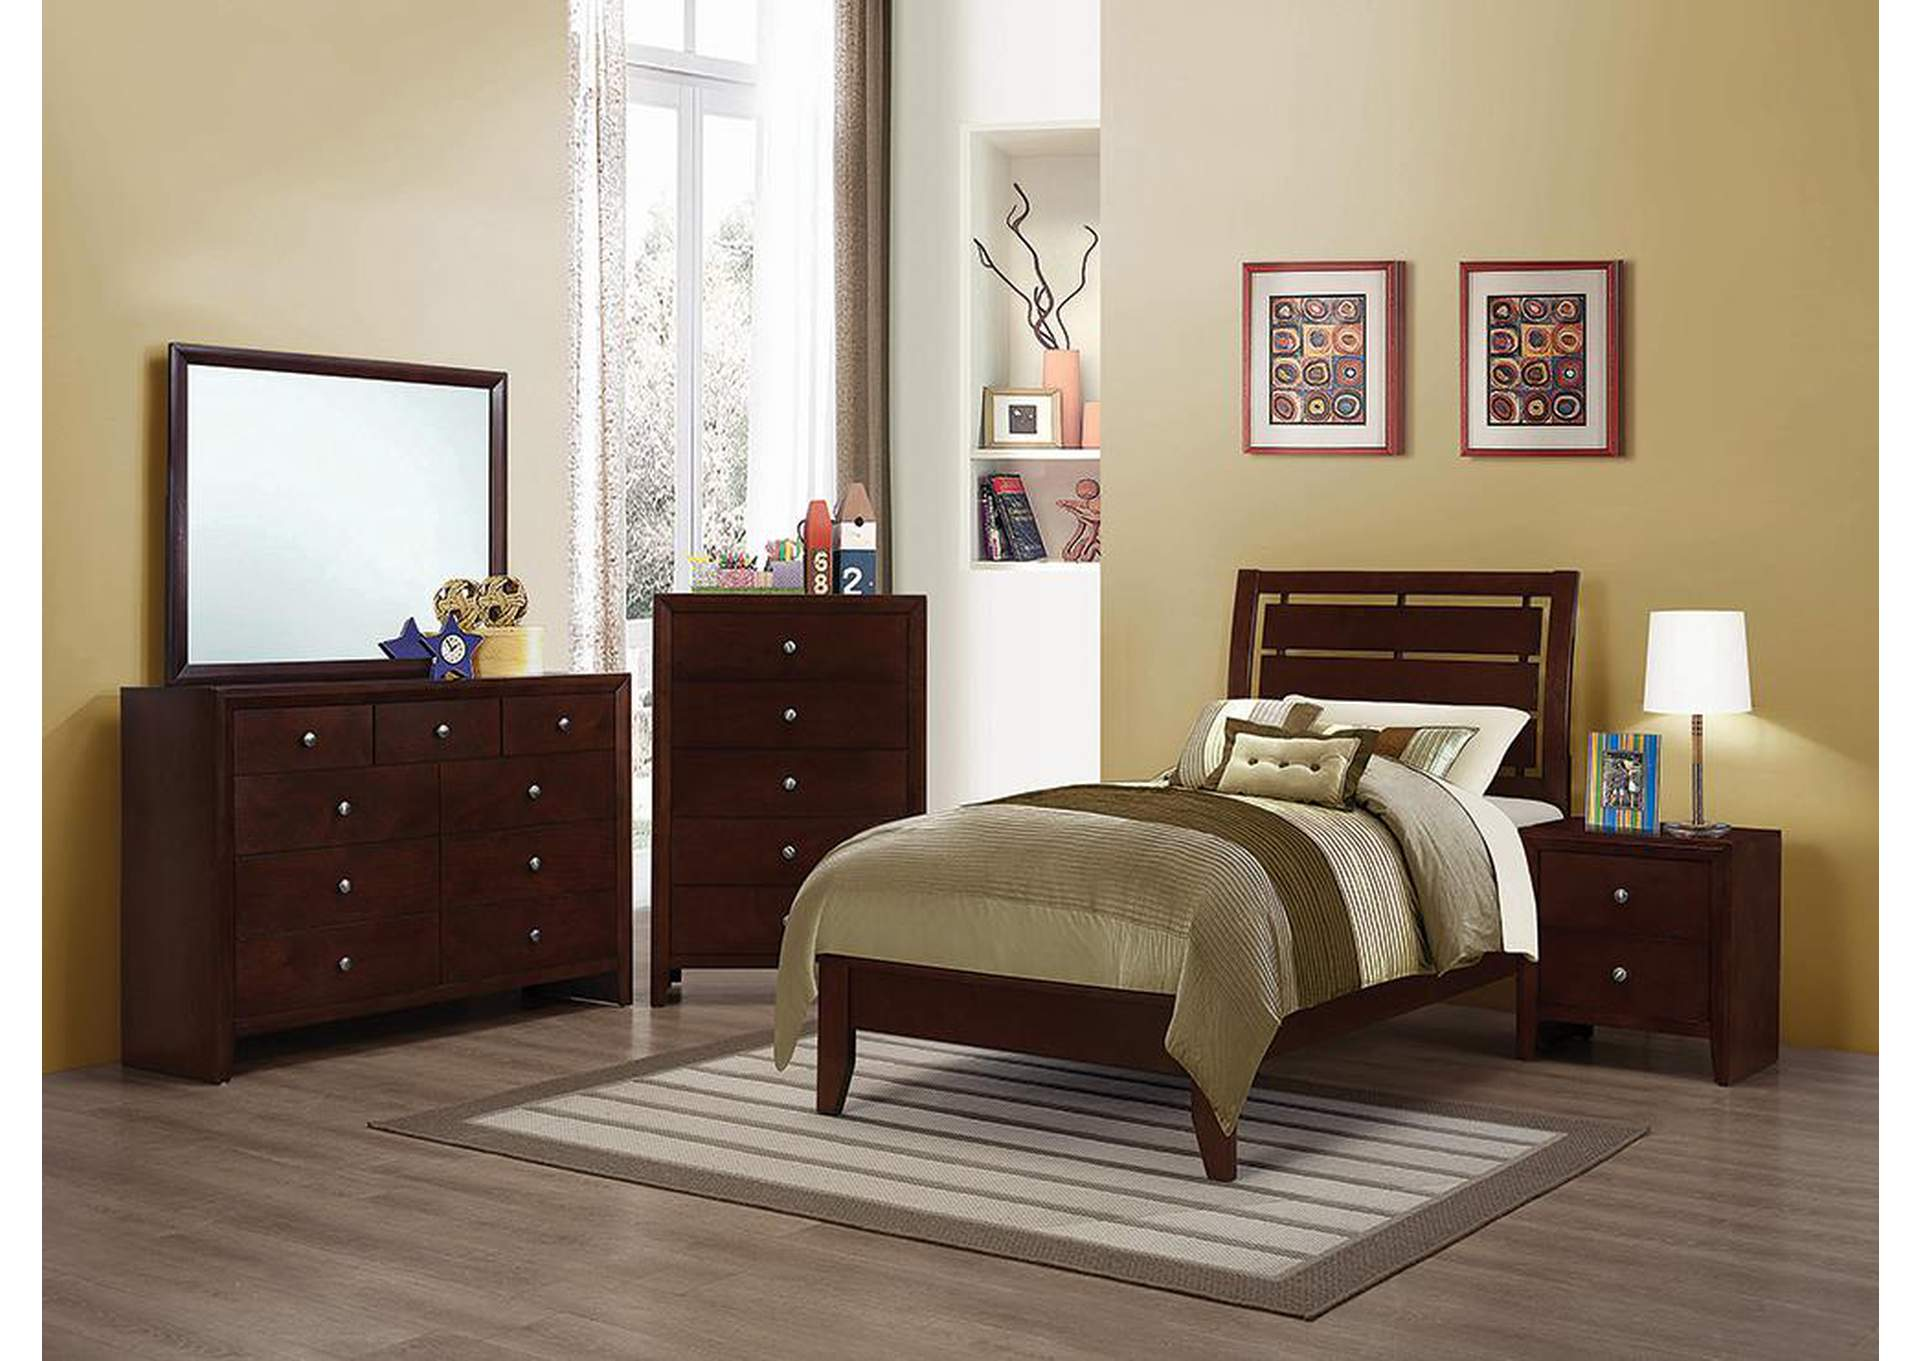 Serenity Merlot Twin Bed,Coaster Furniture